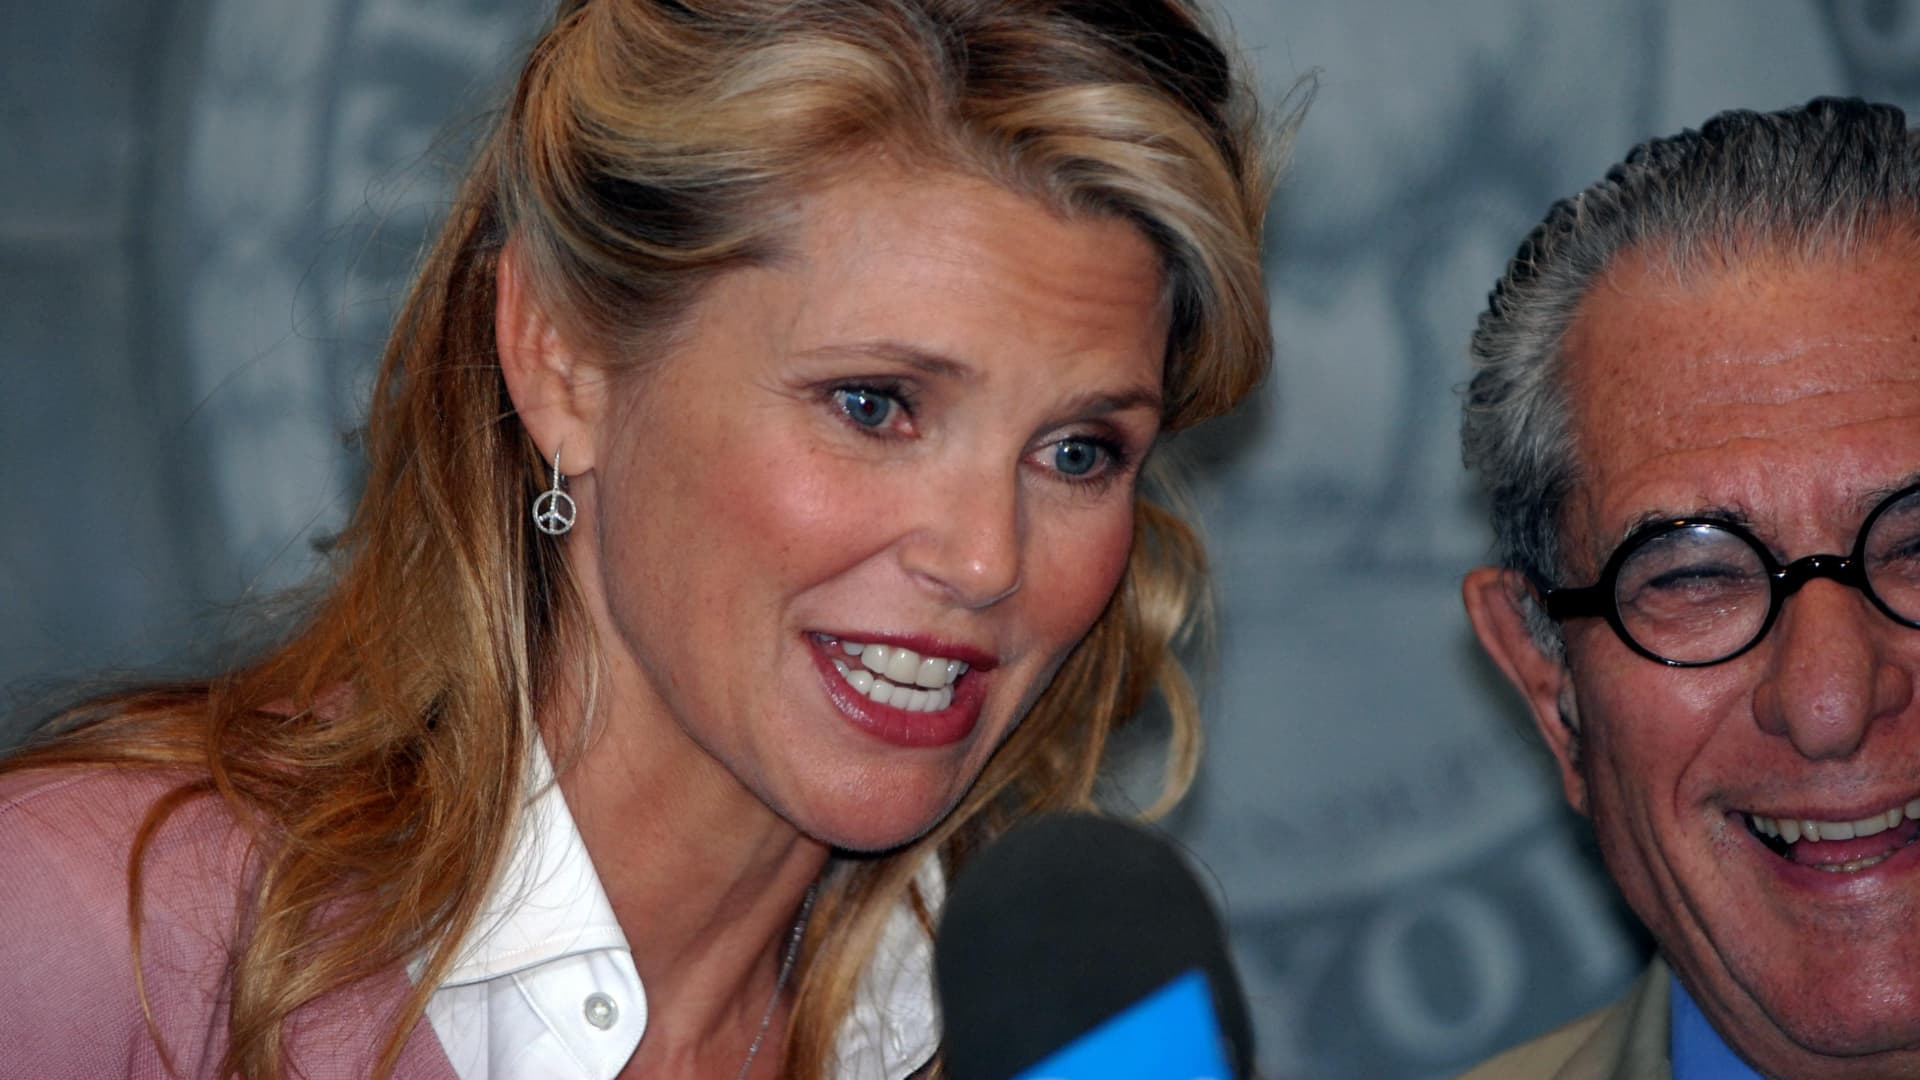 Central Islip, N.Y.: Christie Brinkley and attorney Robert Cohen, after reaching a settlement in the divorce trial with Peter Cook, speak with the media during news conference at the courthouse in Central Islip, New York on July 10, 2008.